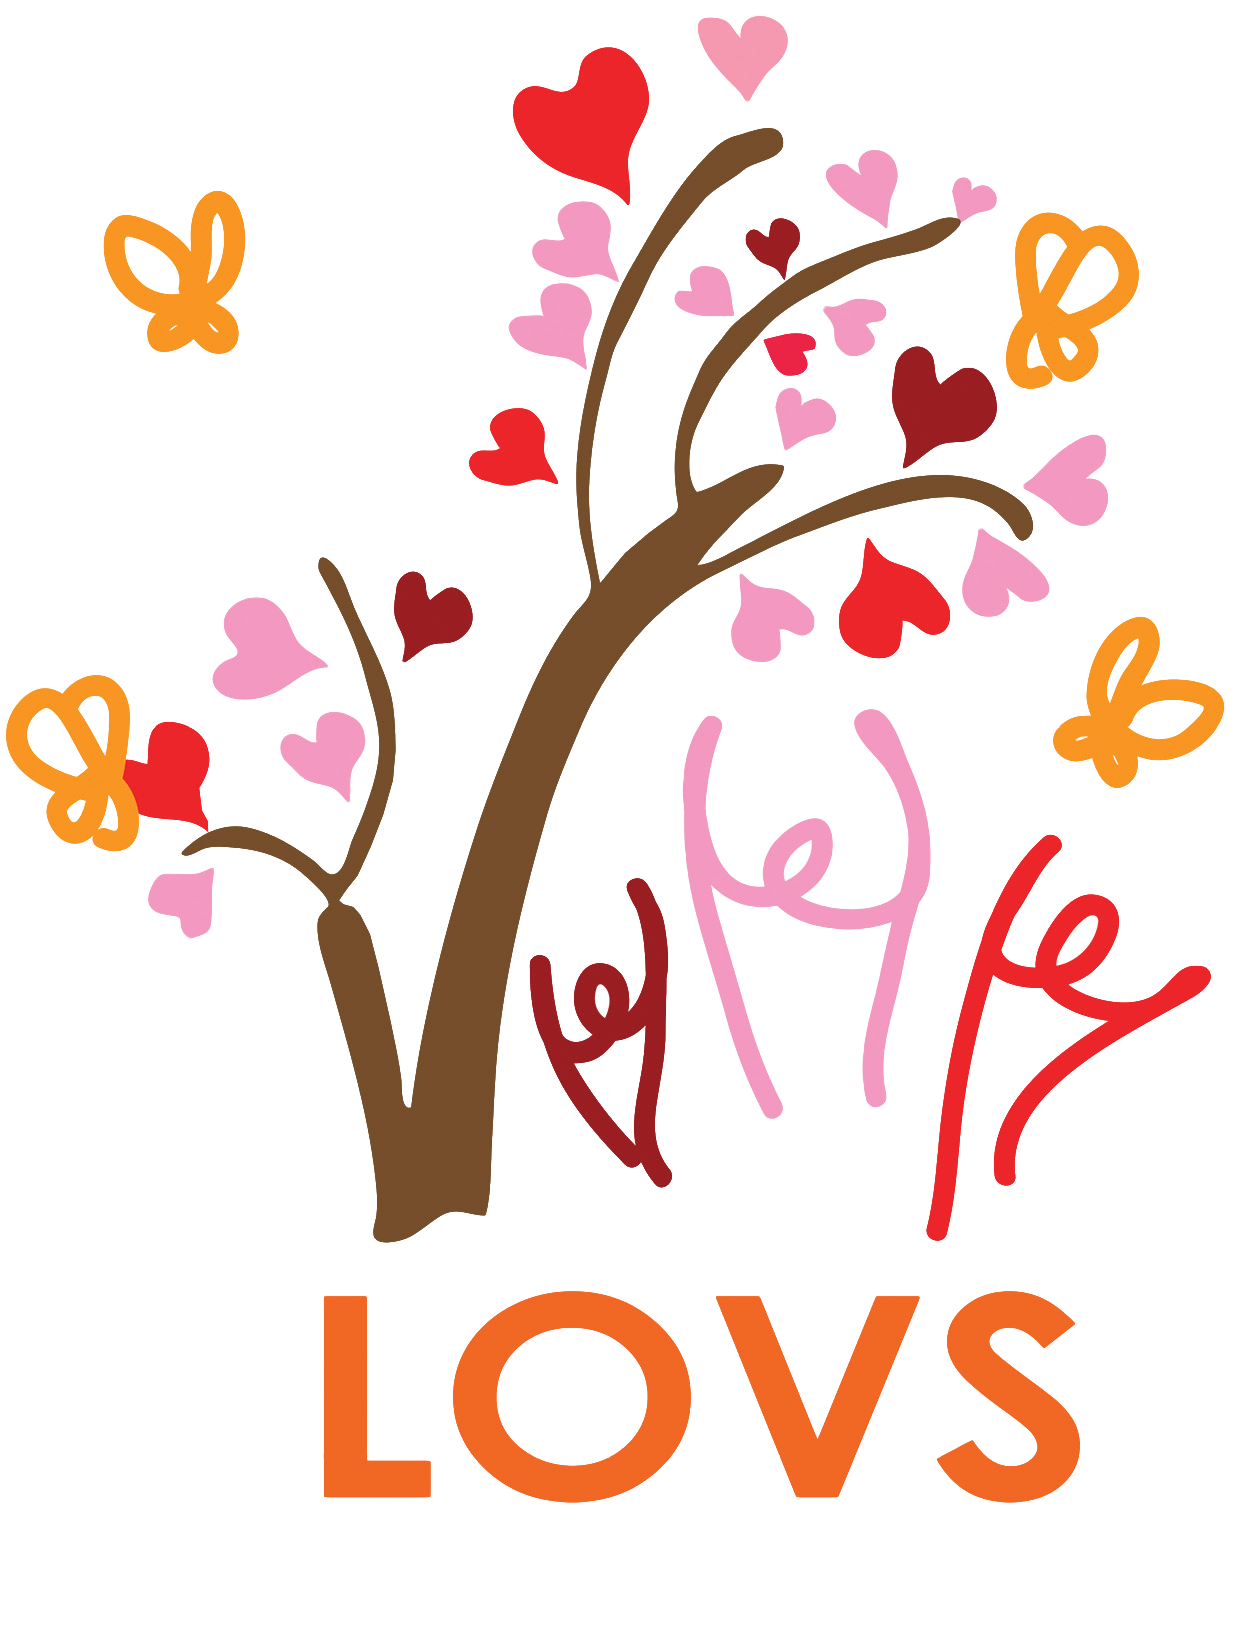 Our Mission - Loved Ones Victims Services (LOVS) is dedicated to meeting the emotional and physical needs of family members and friends who have lost loved ones, often times to violence. Our primary objective is to provide individual family and group counseling for adults, teens and children. Learn More